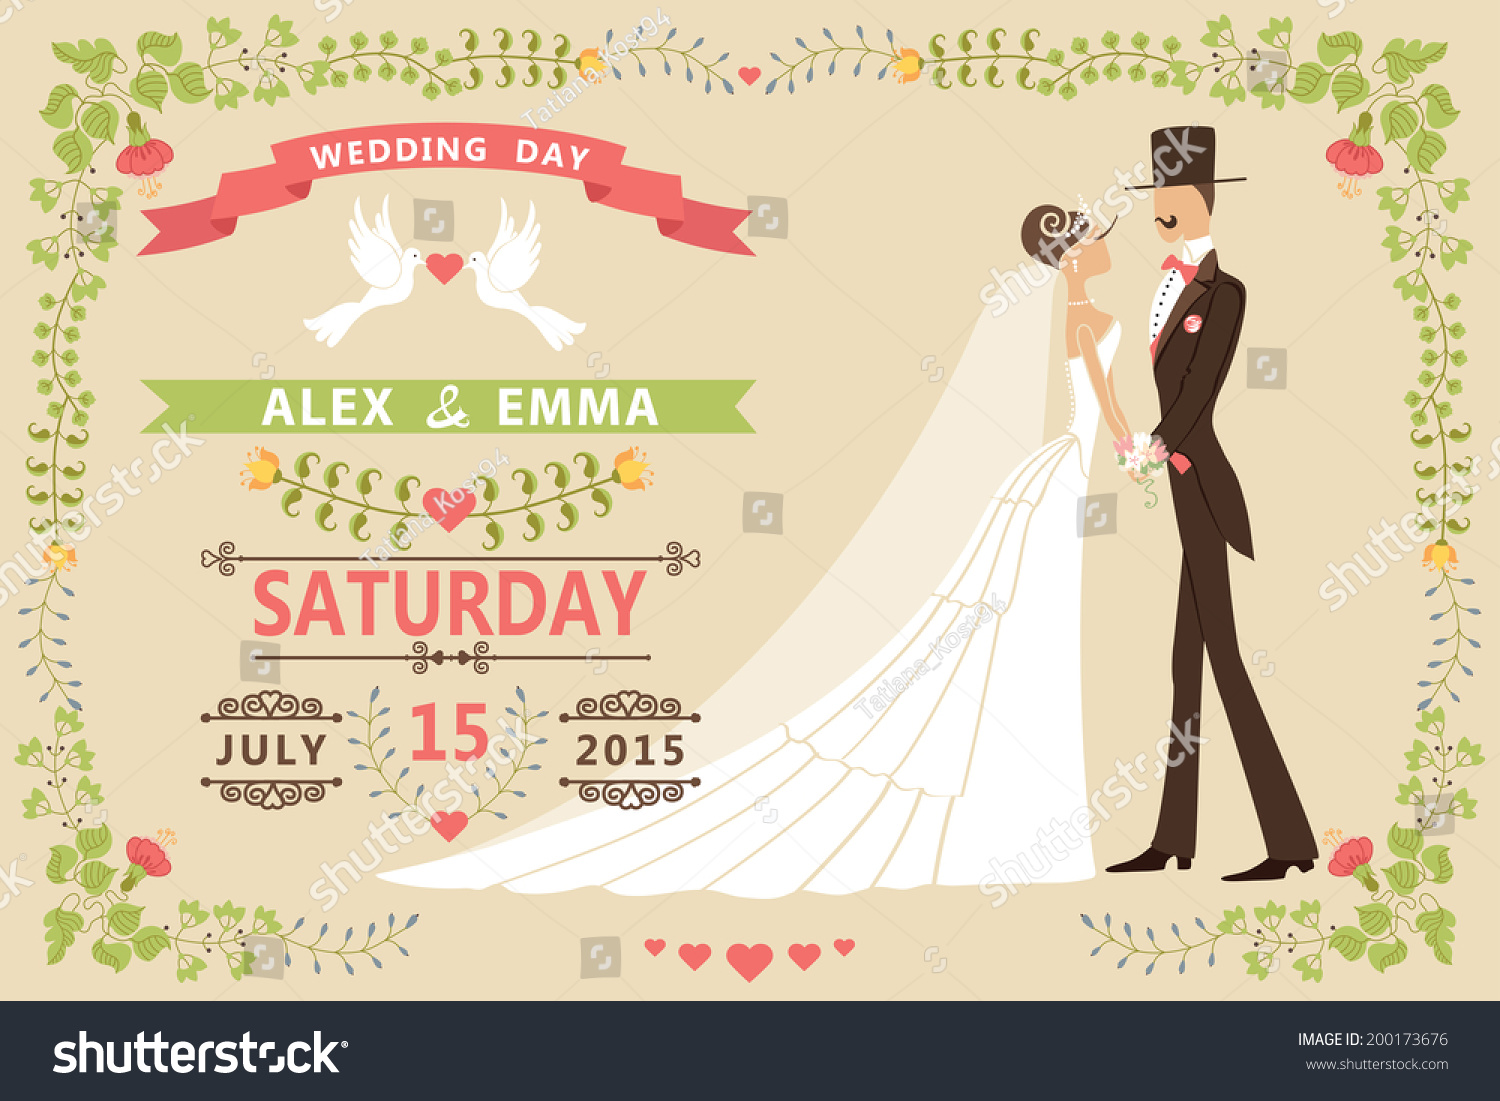 Vintage Wedding Invitation Design Templatecartoon Pigeons Stock